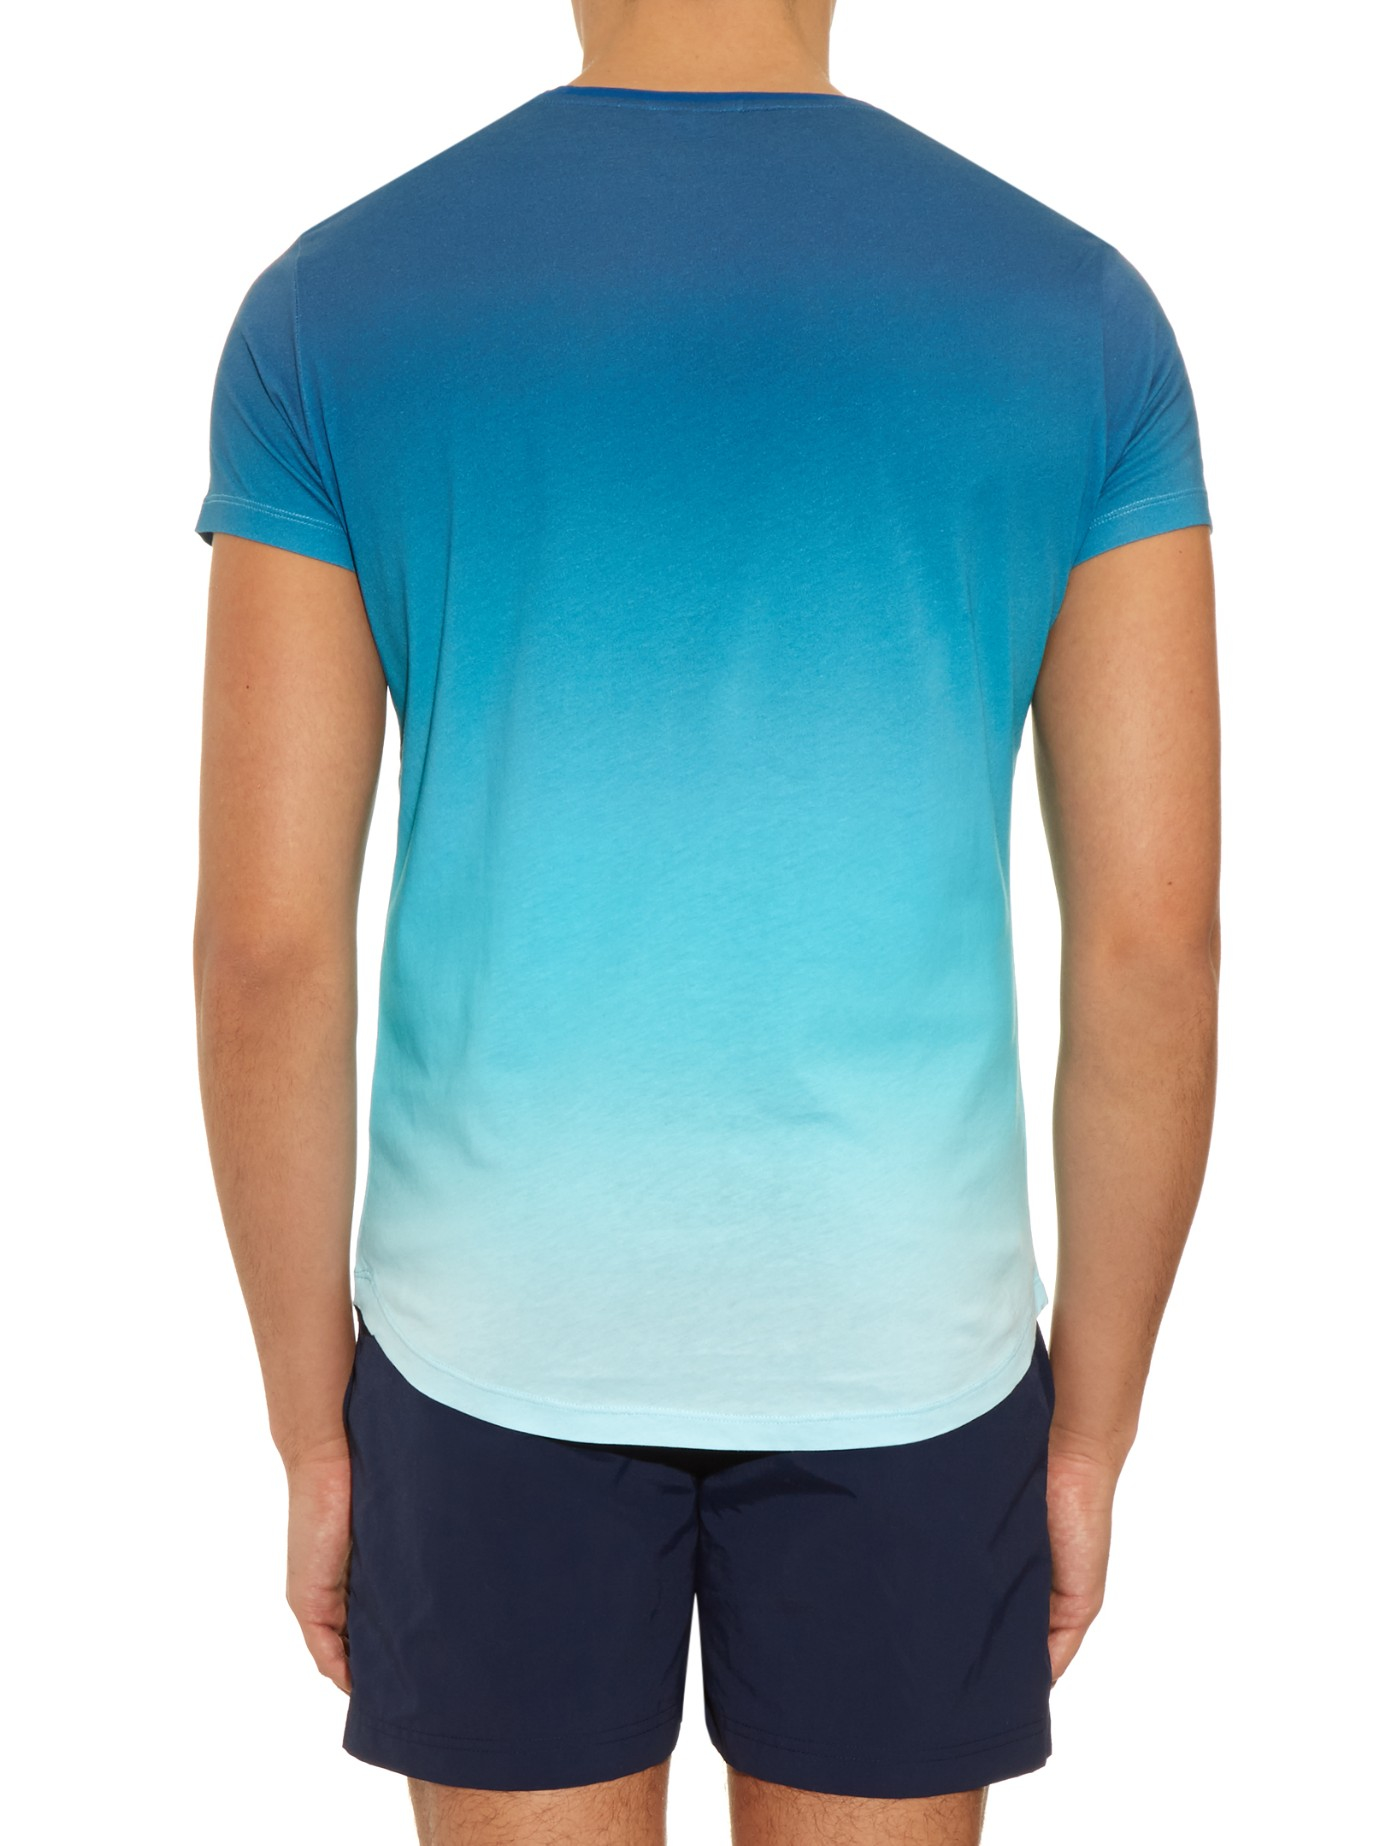 orlebar brown ob t ombr jersey t shirt in blue for men lyst